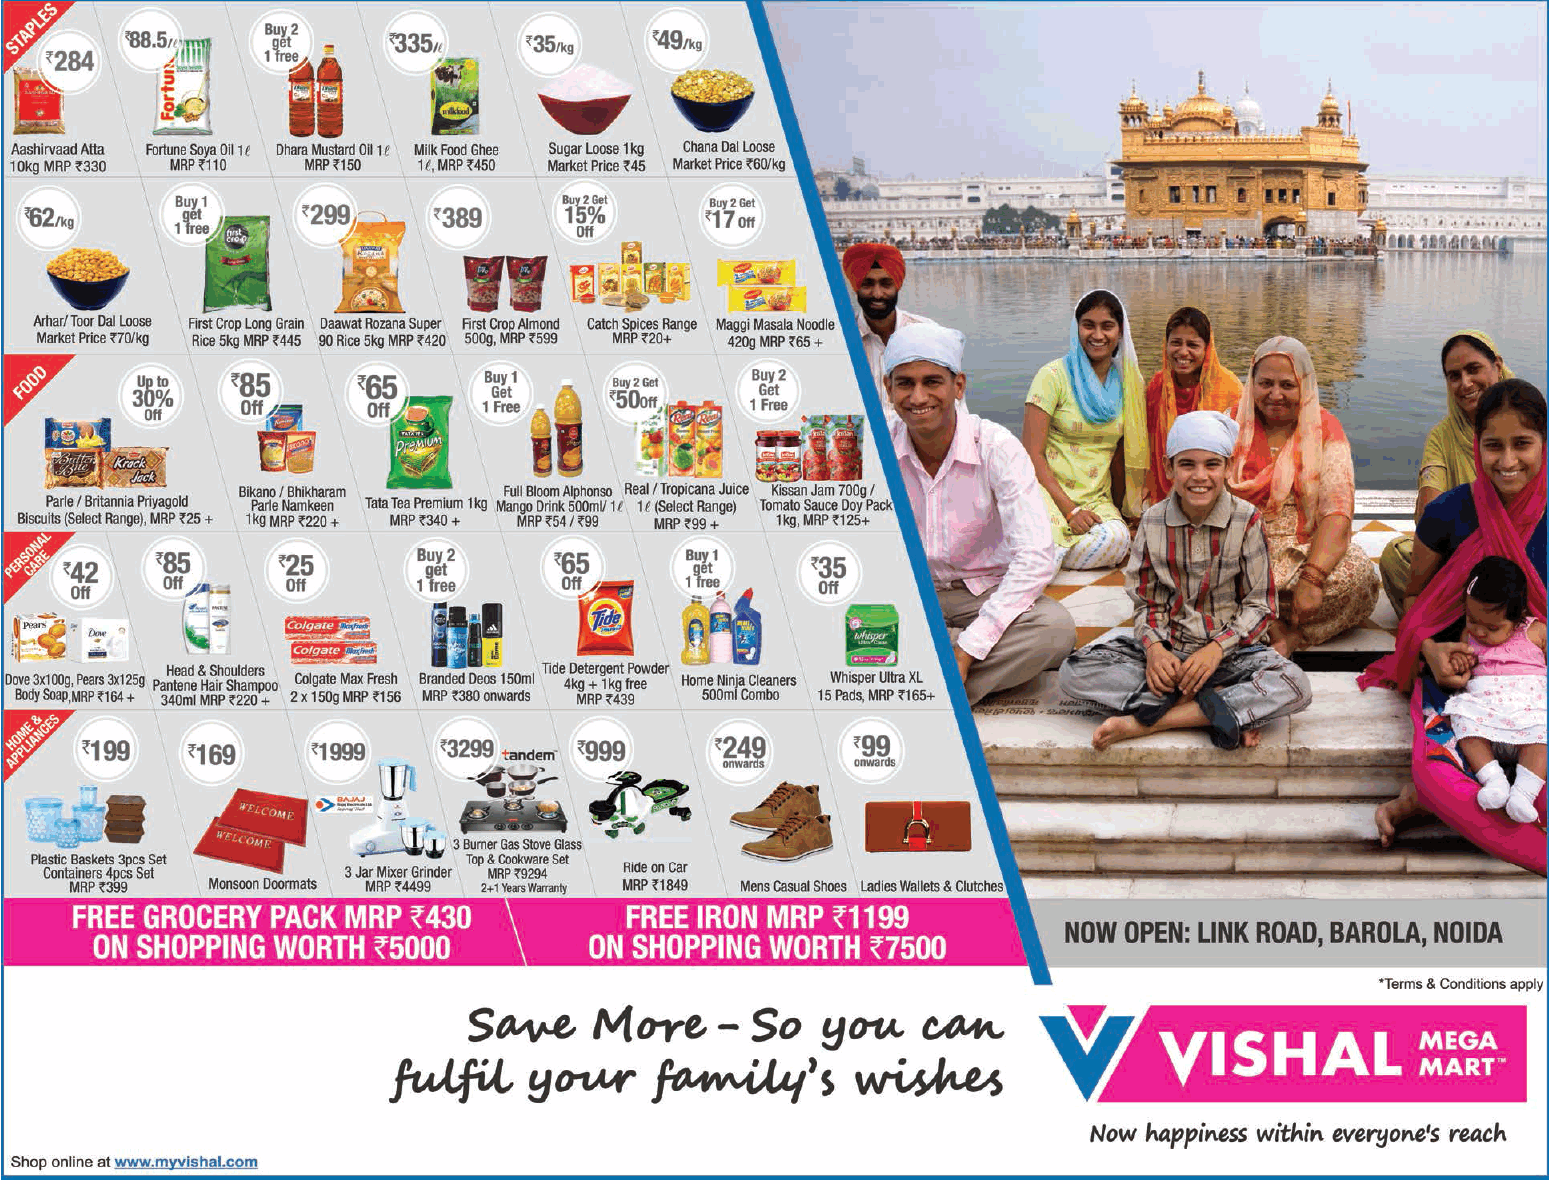 Vishal Mega Mart Now Happiness Within Everyones Reach Ad